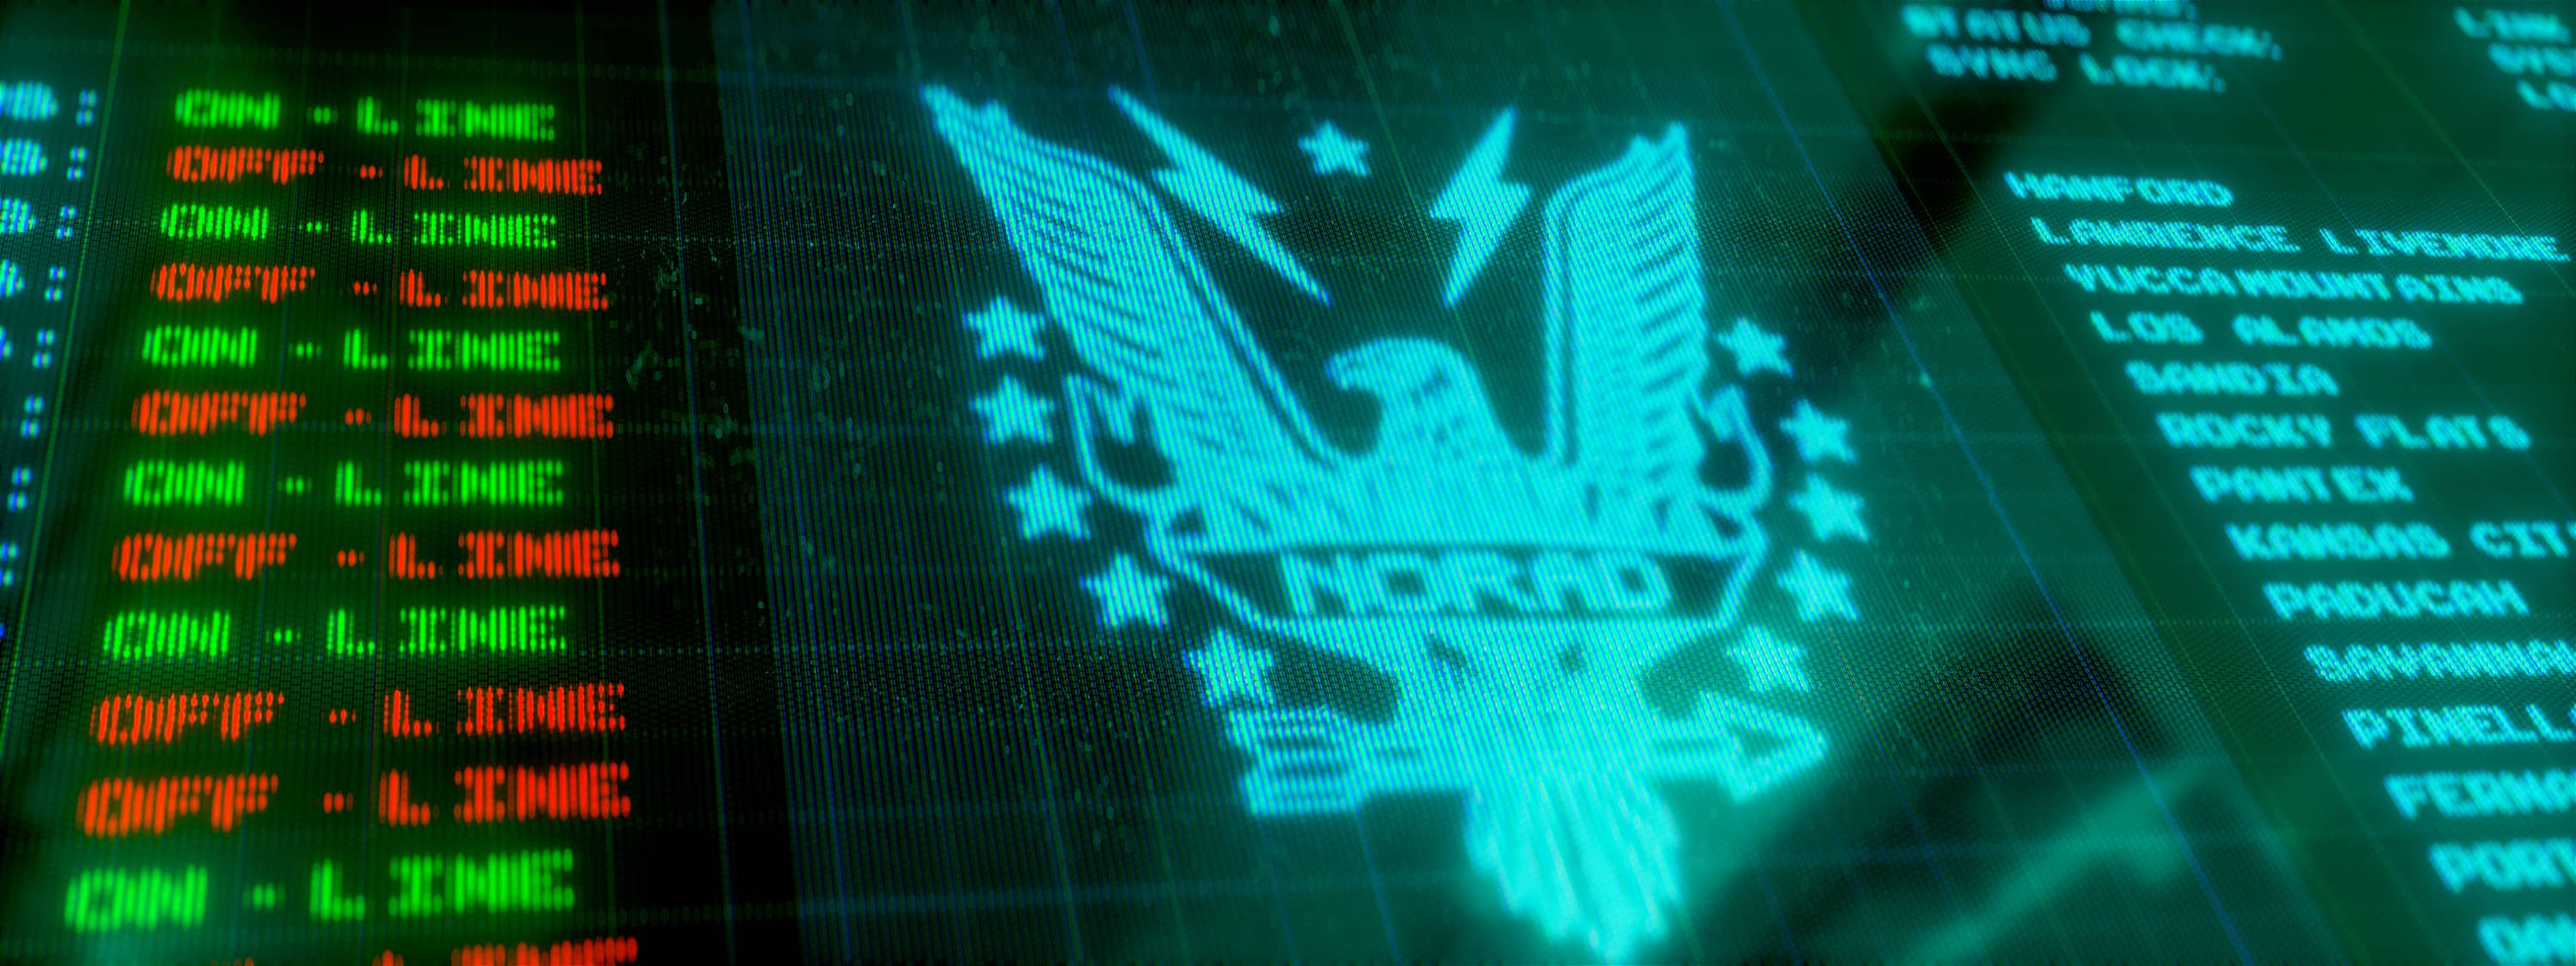 A close up of a computer screen showing a NORAD logo and data